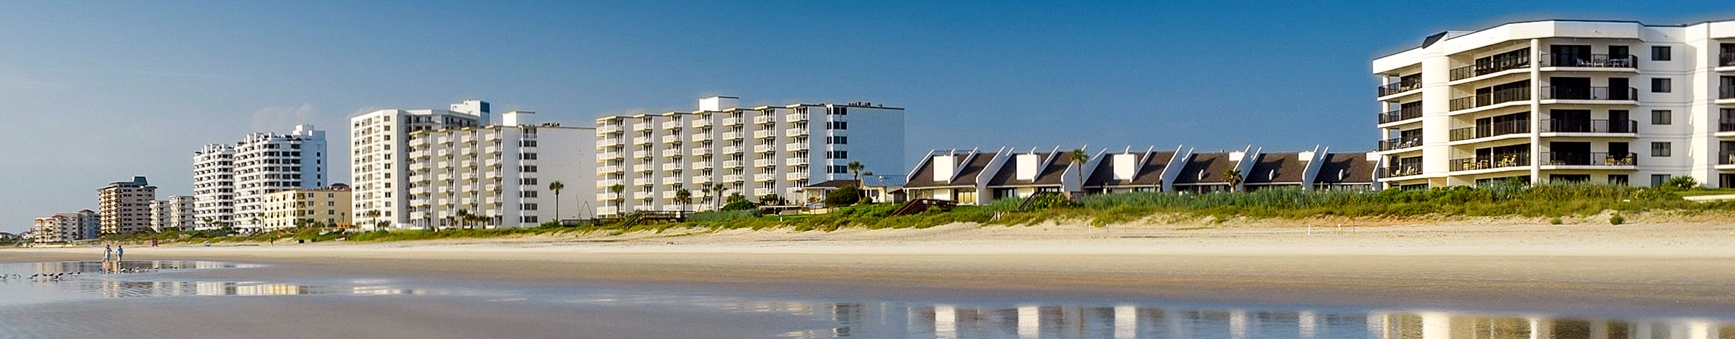 Daytona Beach Shores Condo Buildings